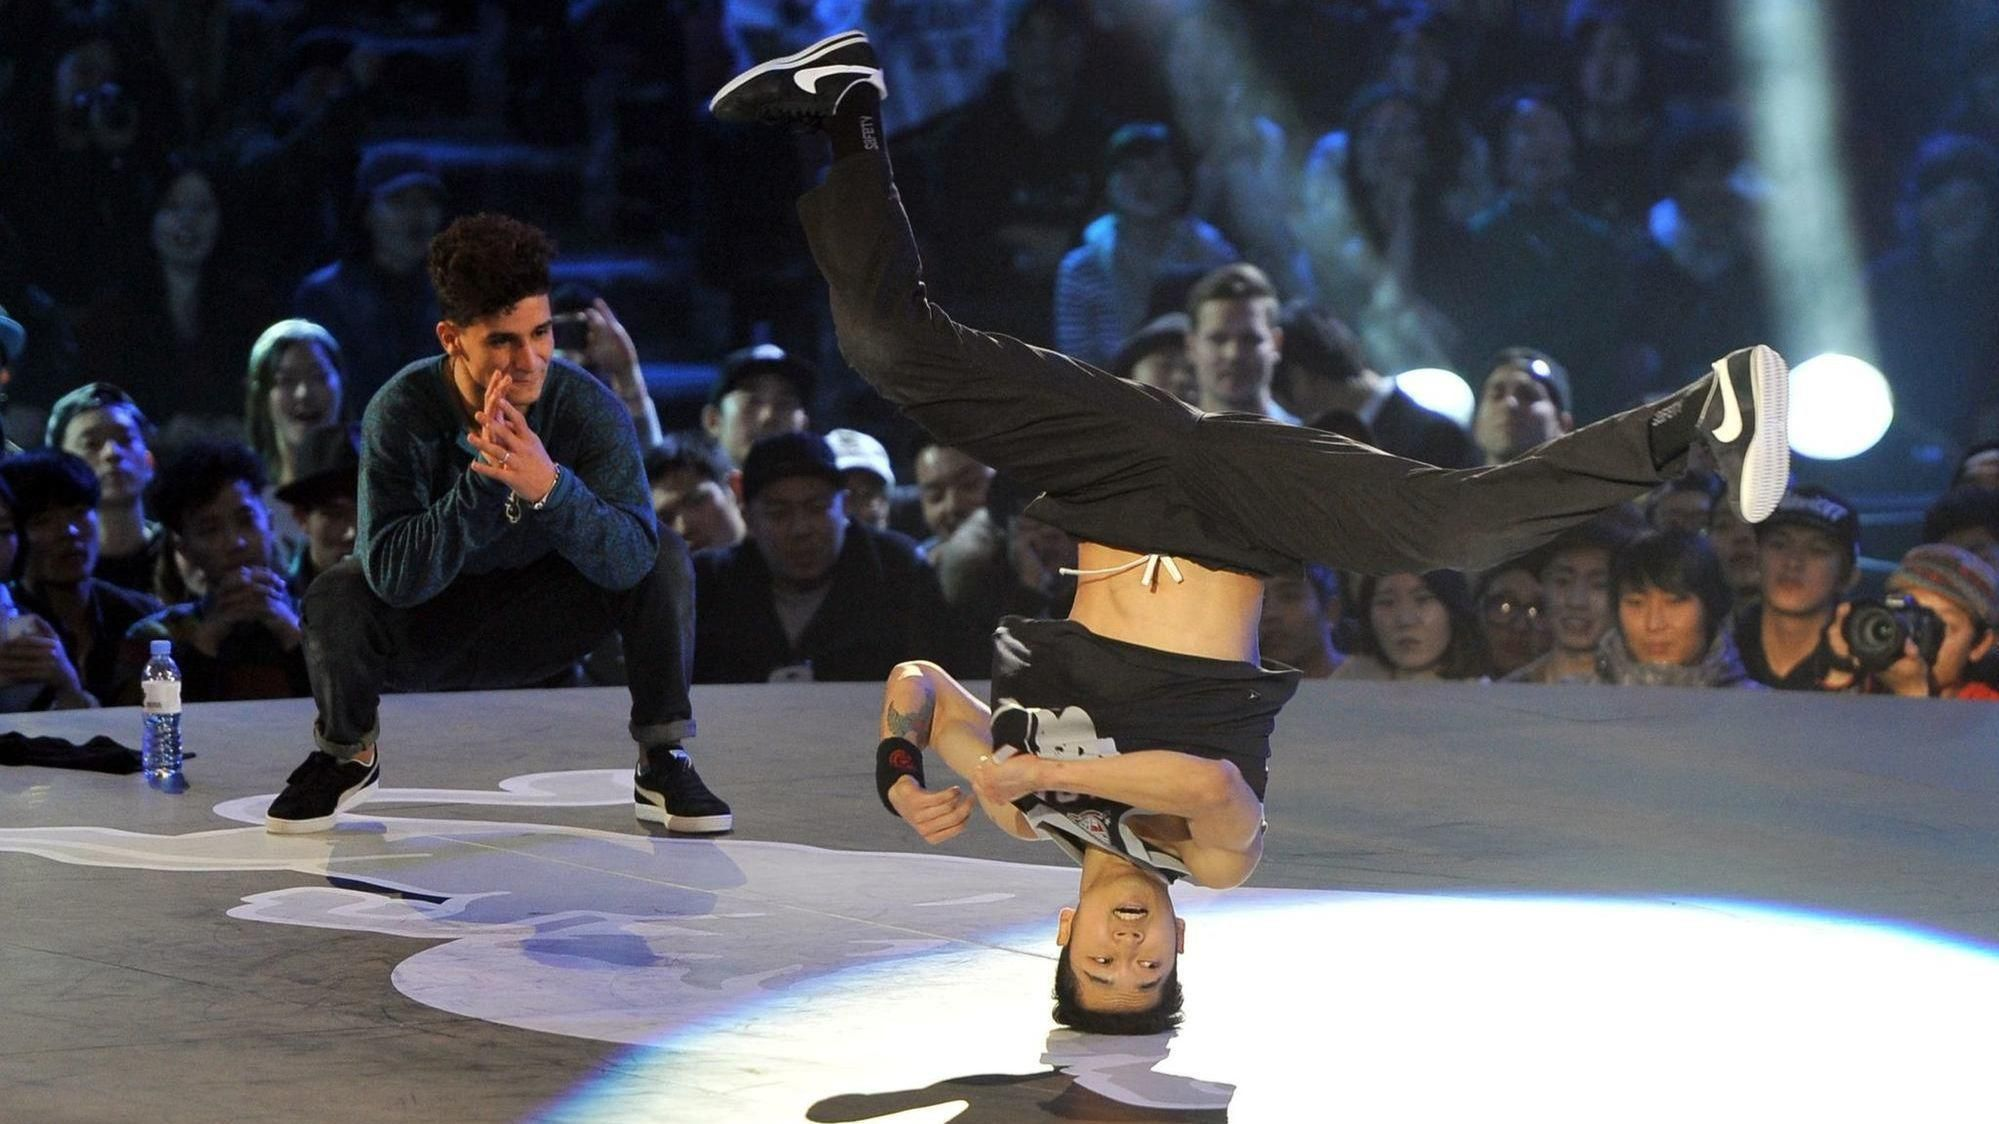 Paris wants breakdancing to be Olympic sport at 2024 Games